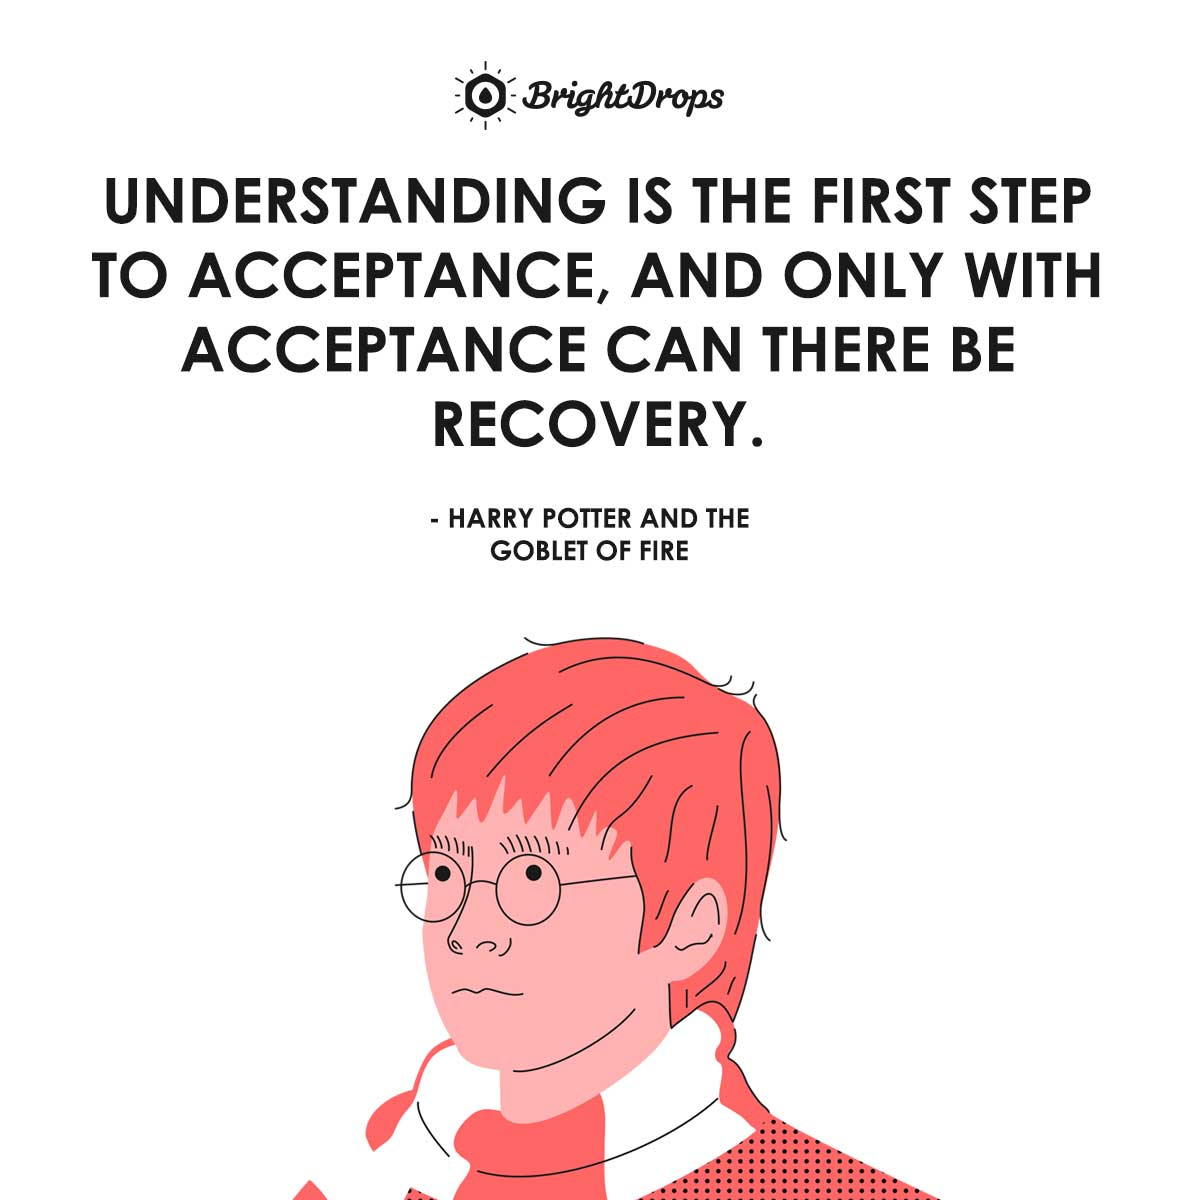 Understanding is the first step to acceptance, and only with acceptance can there be recovery. - Harry Potter and the Goblet of Fire